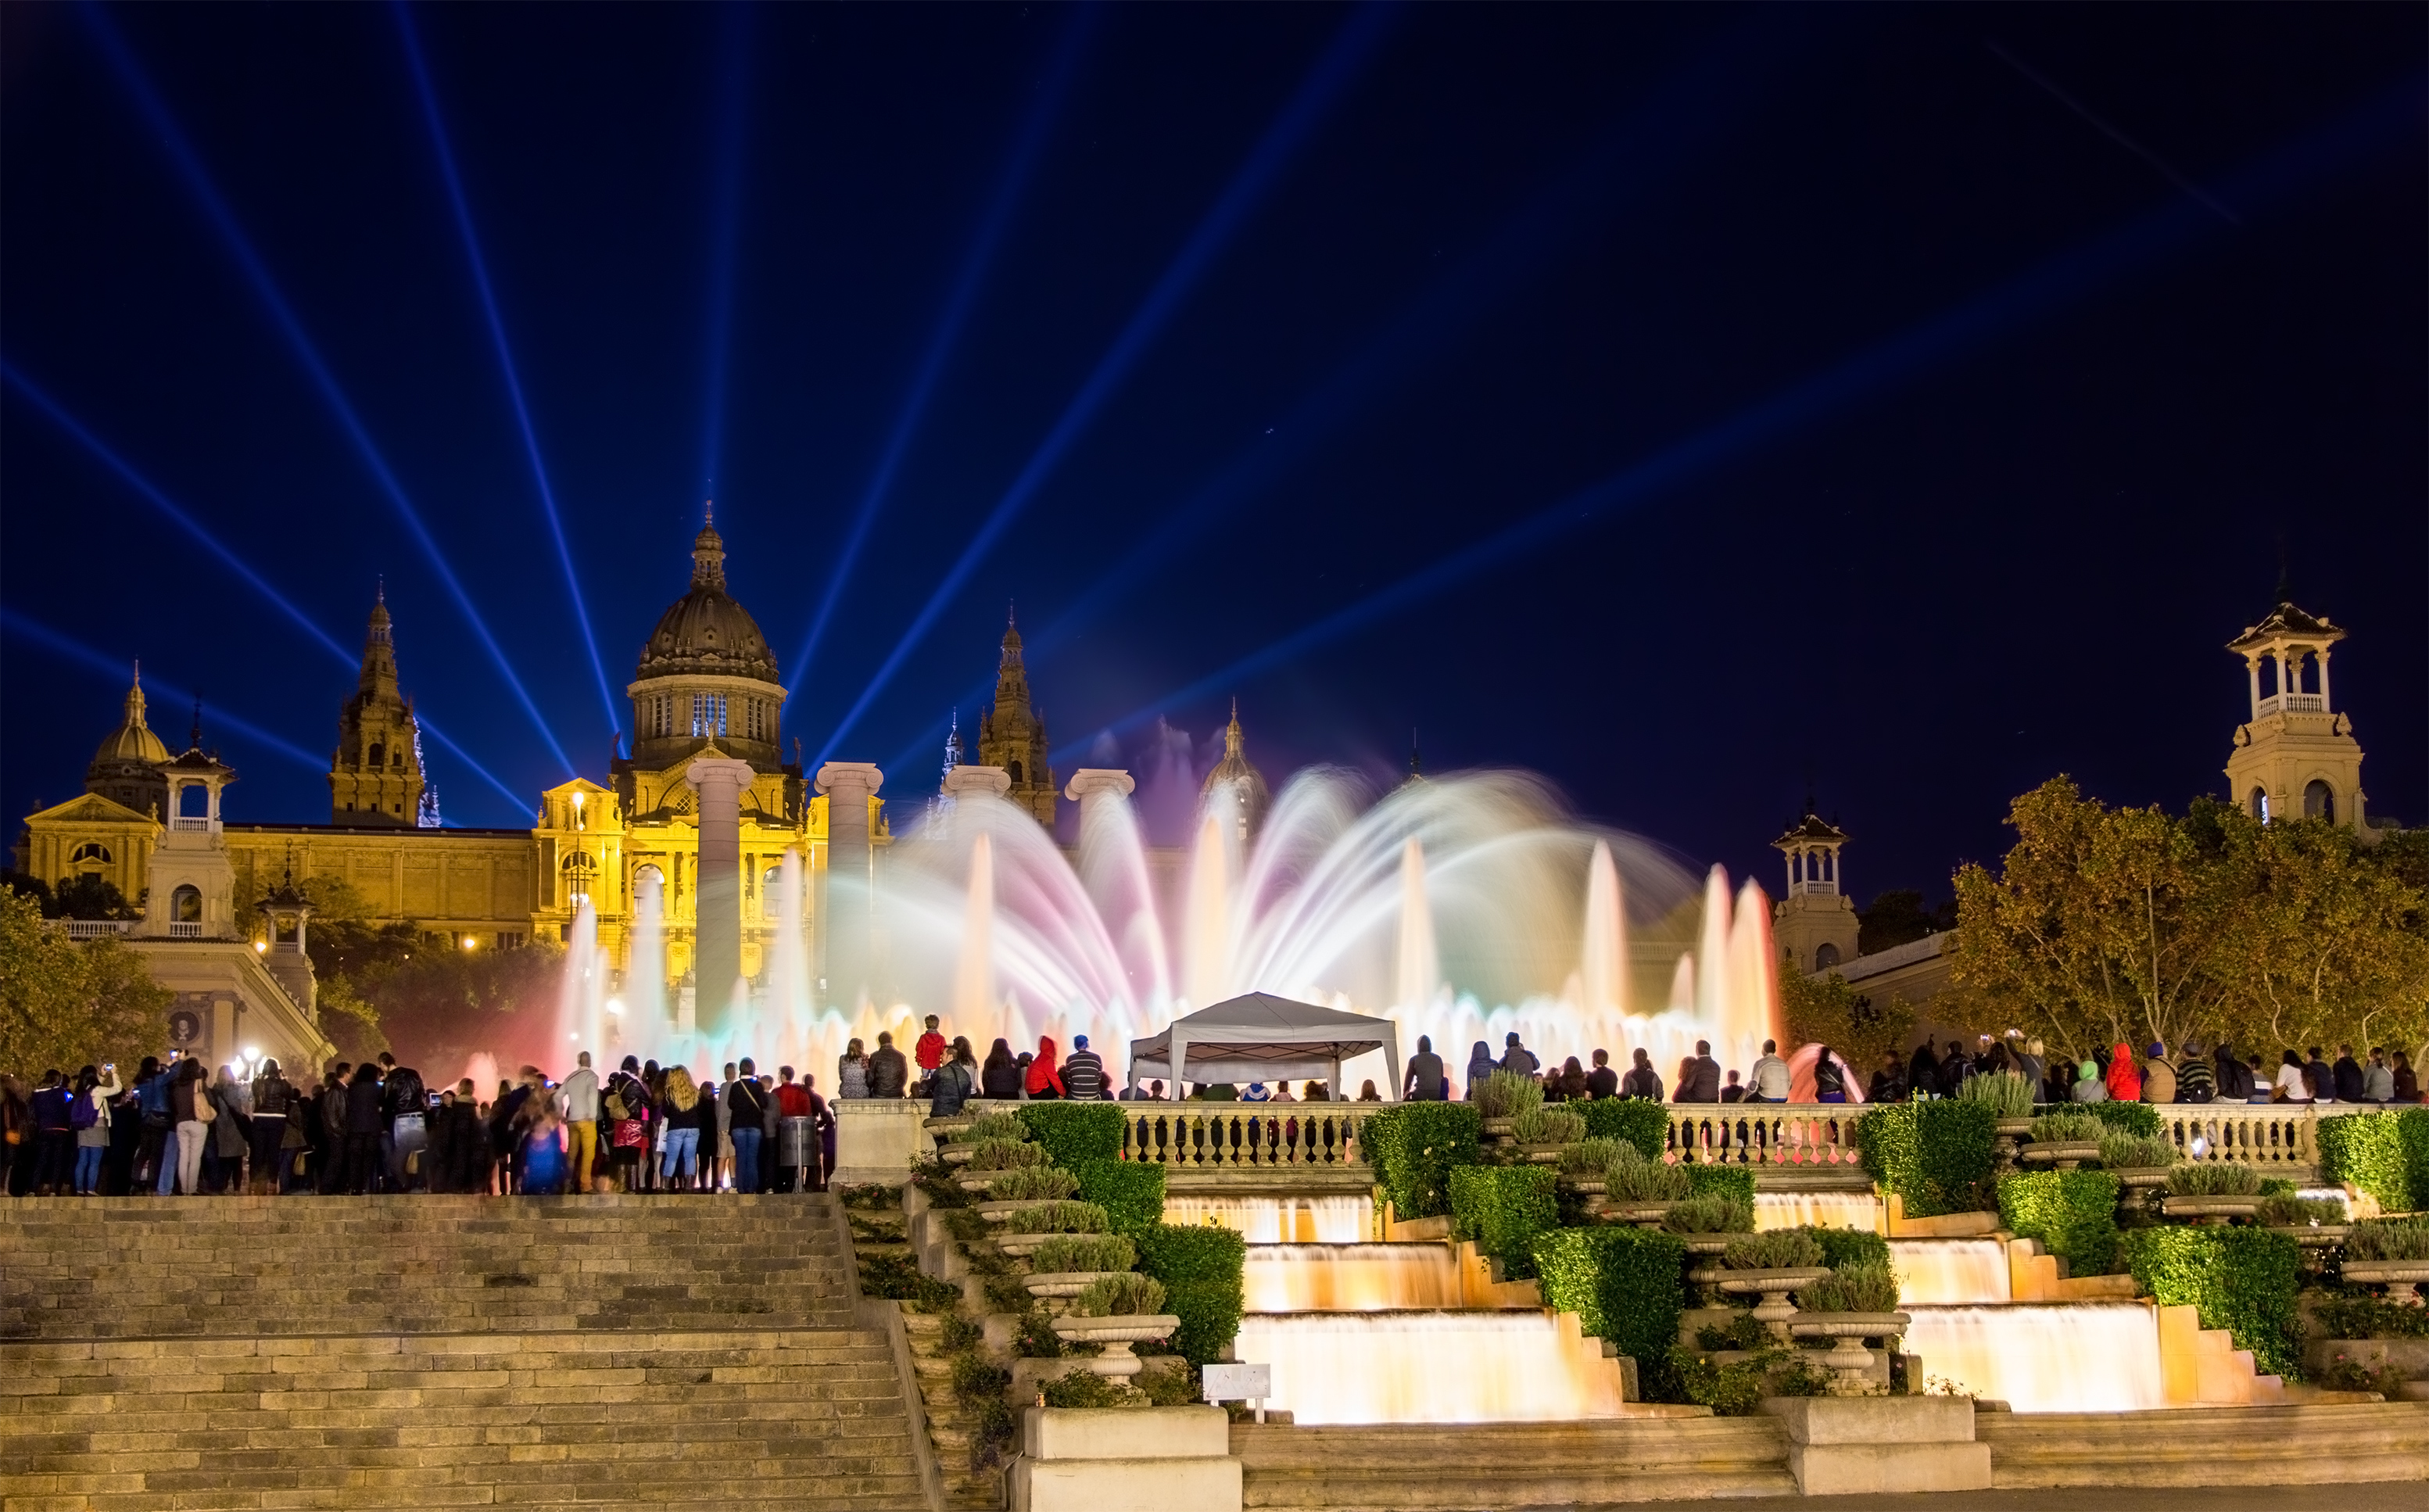 The Magic Fountain of Montjuic in Barcelona, Spain